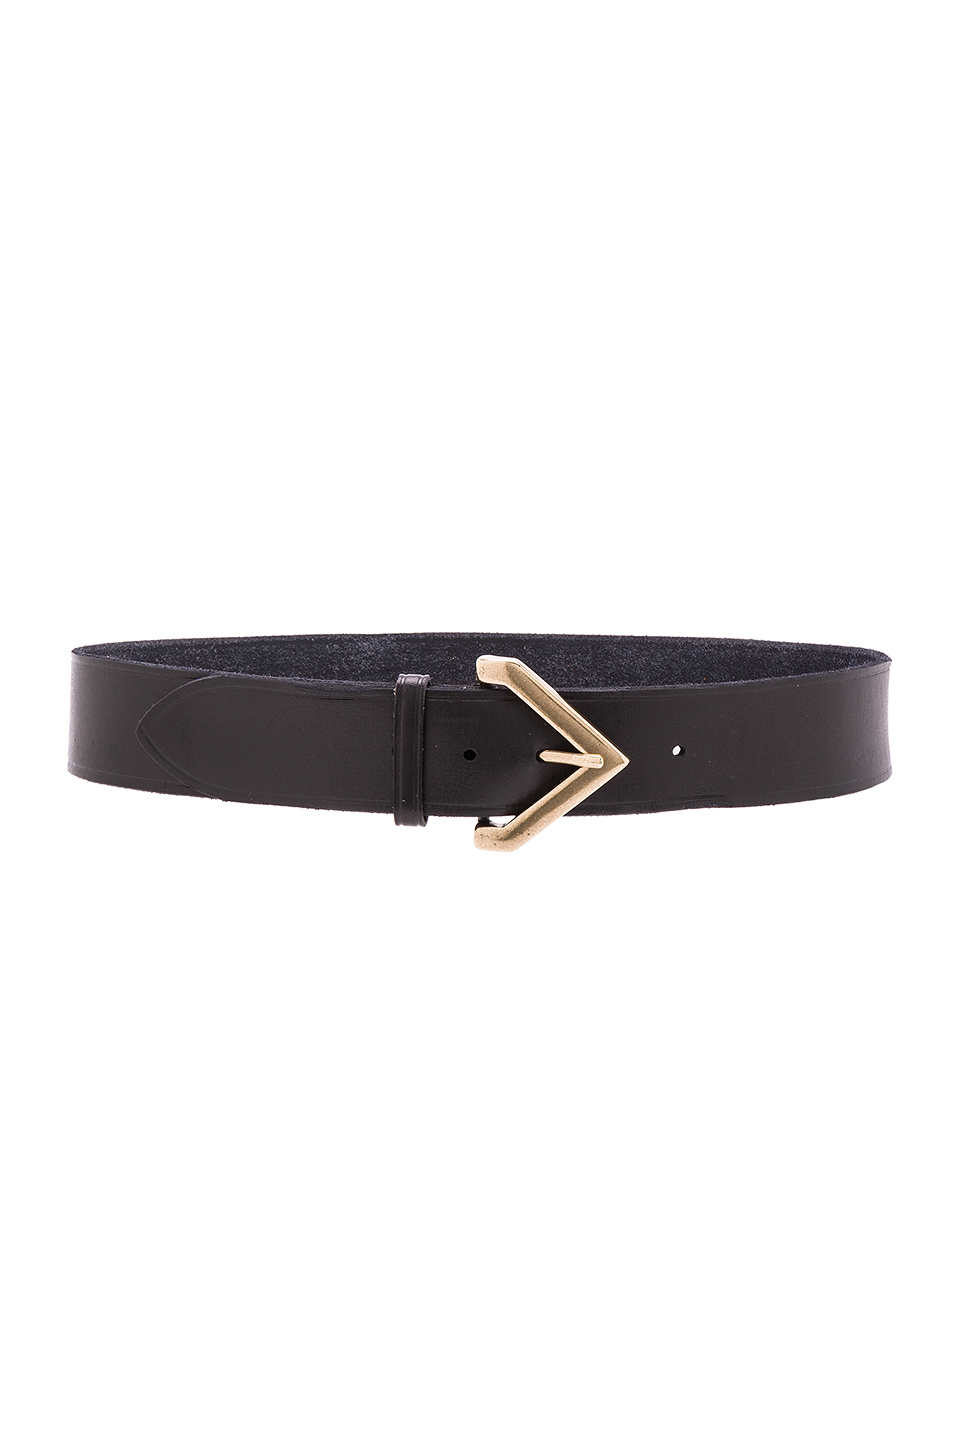 Linea Pelle Triangular Buckle Hip Belt in Black